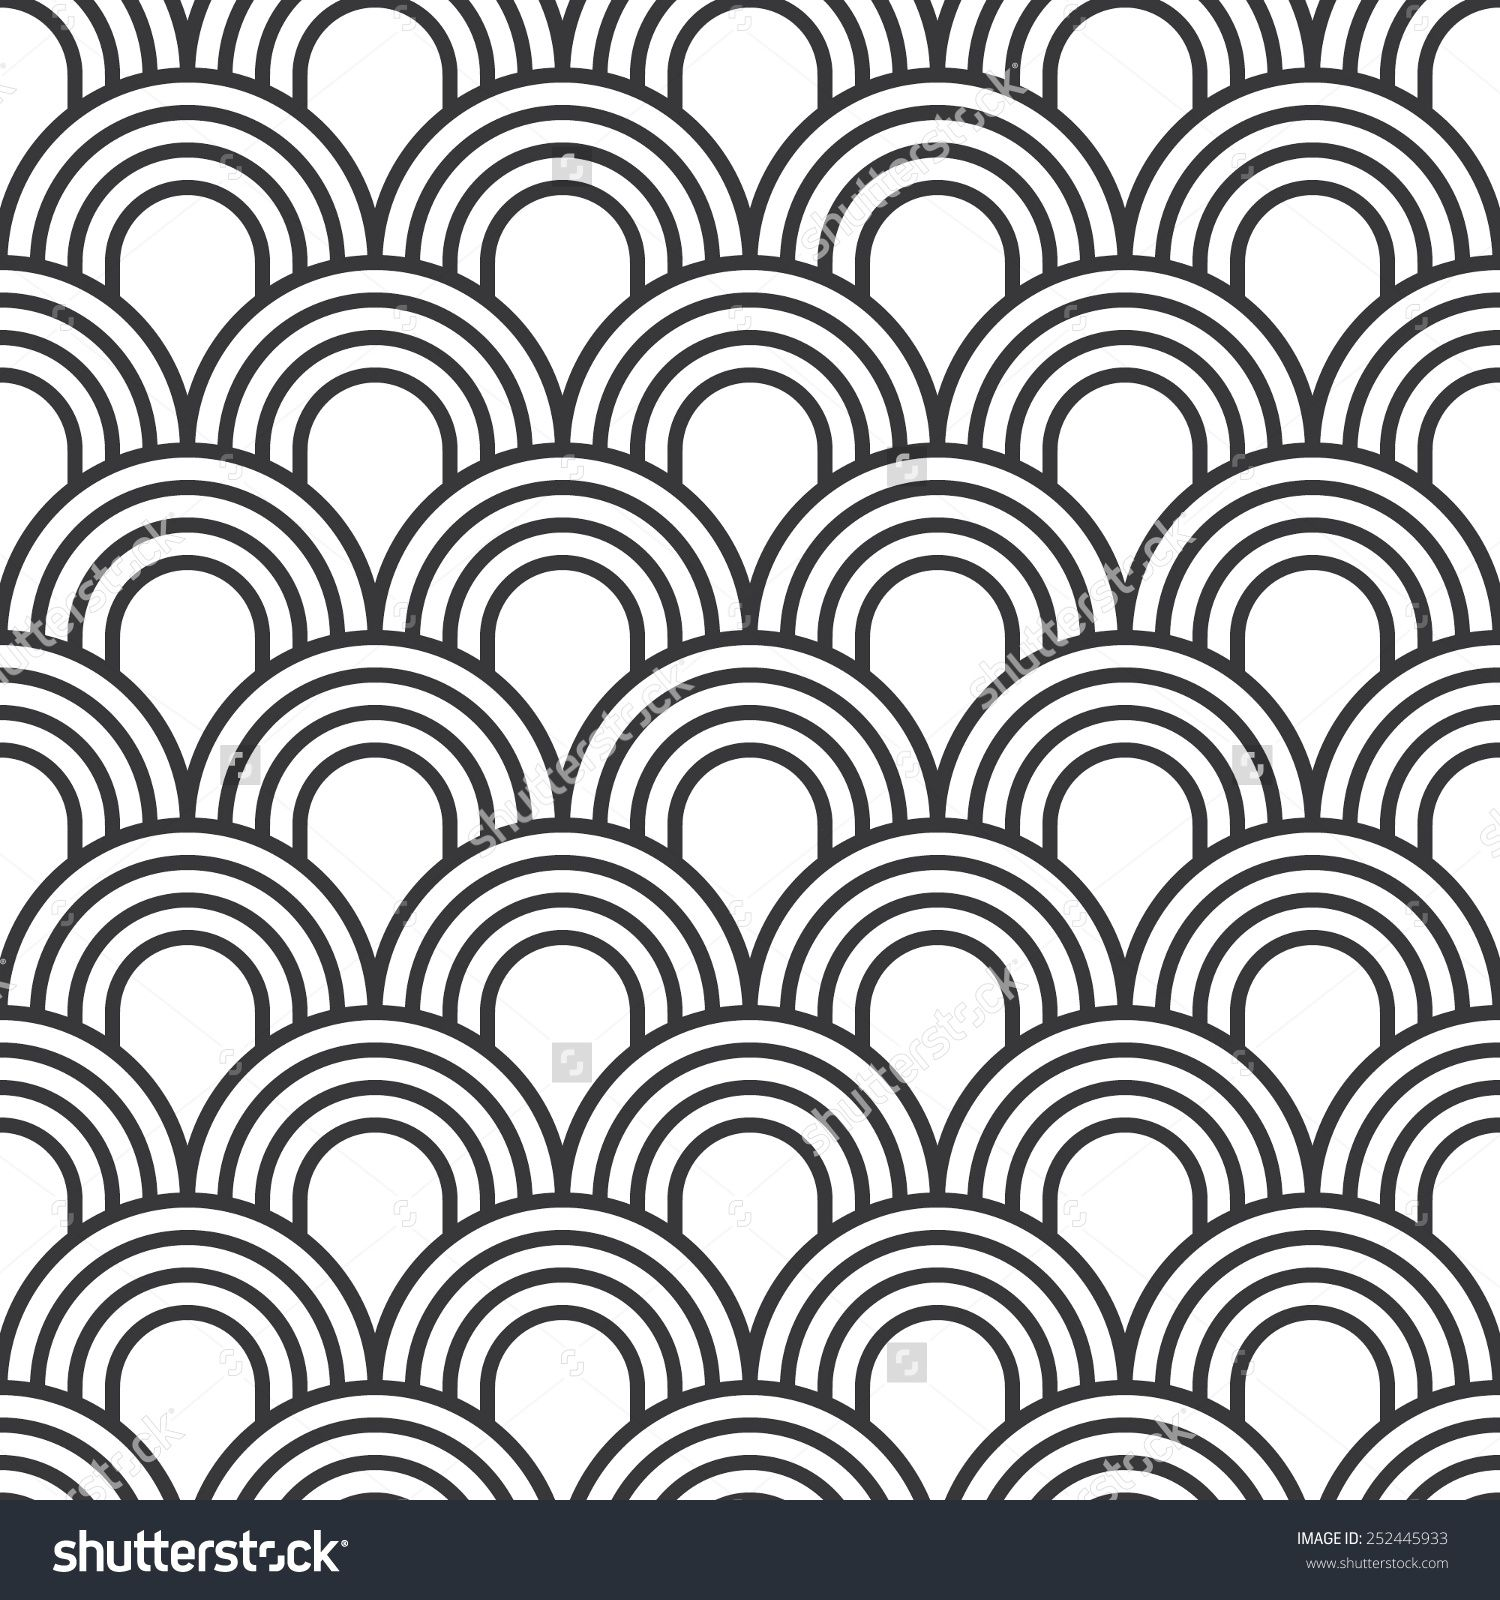 Seamless Simple Art Deco Wave Scales Pattern Vector ...